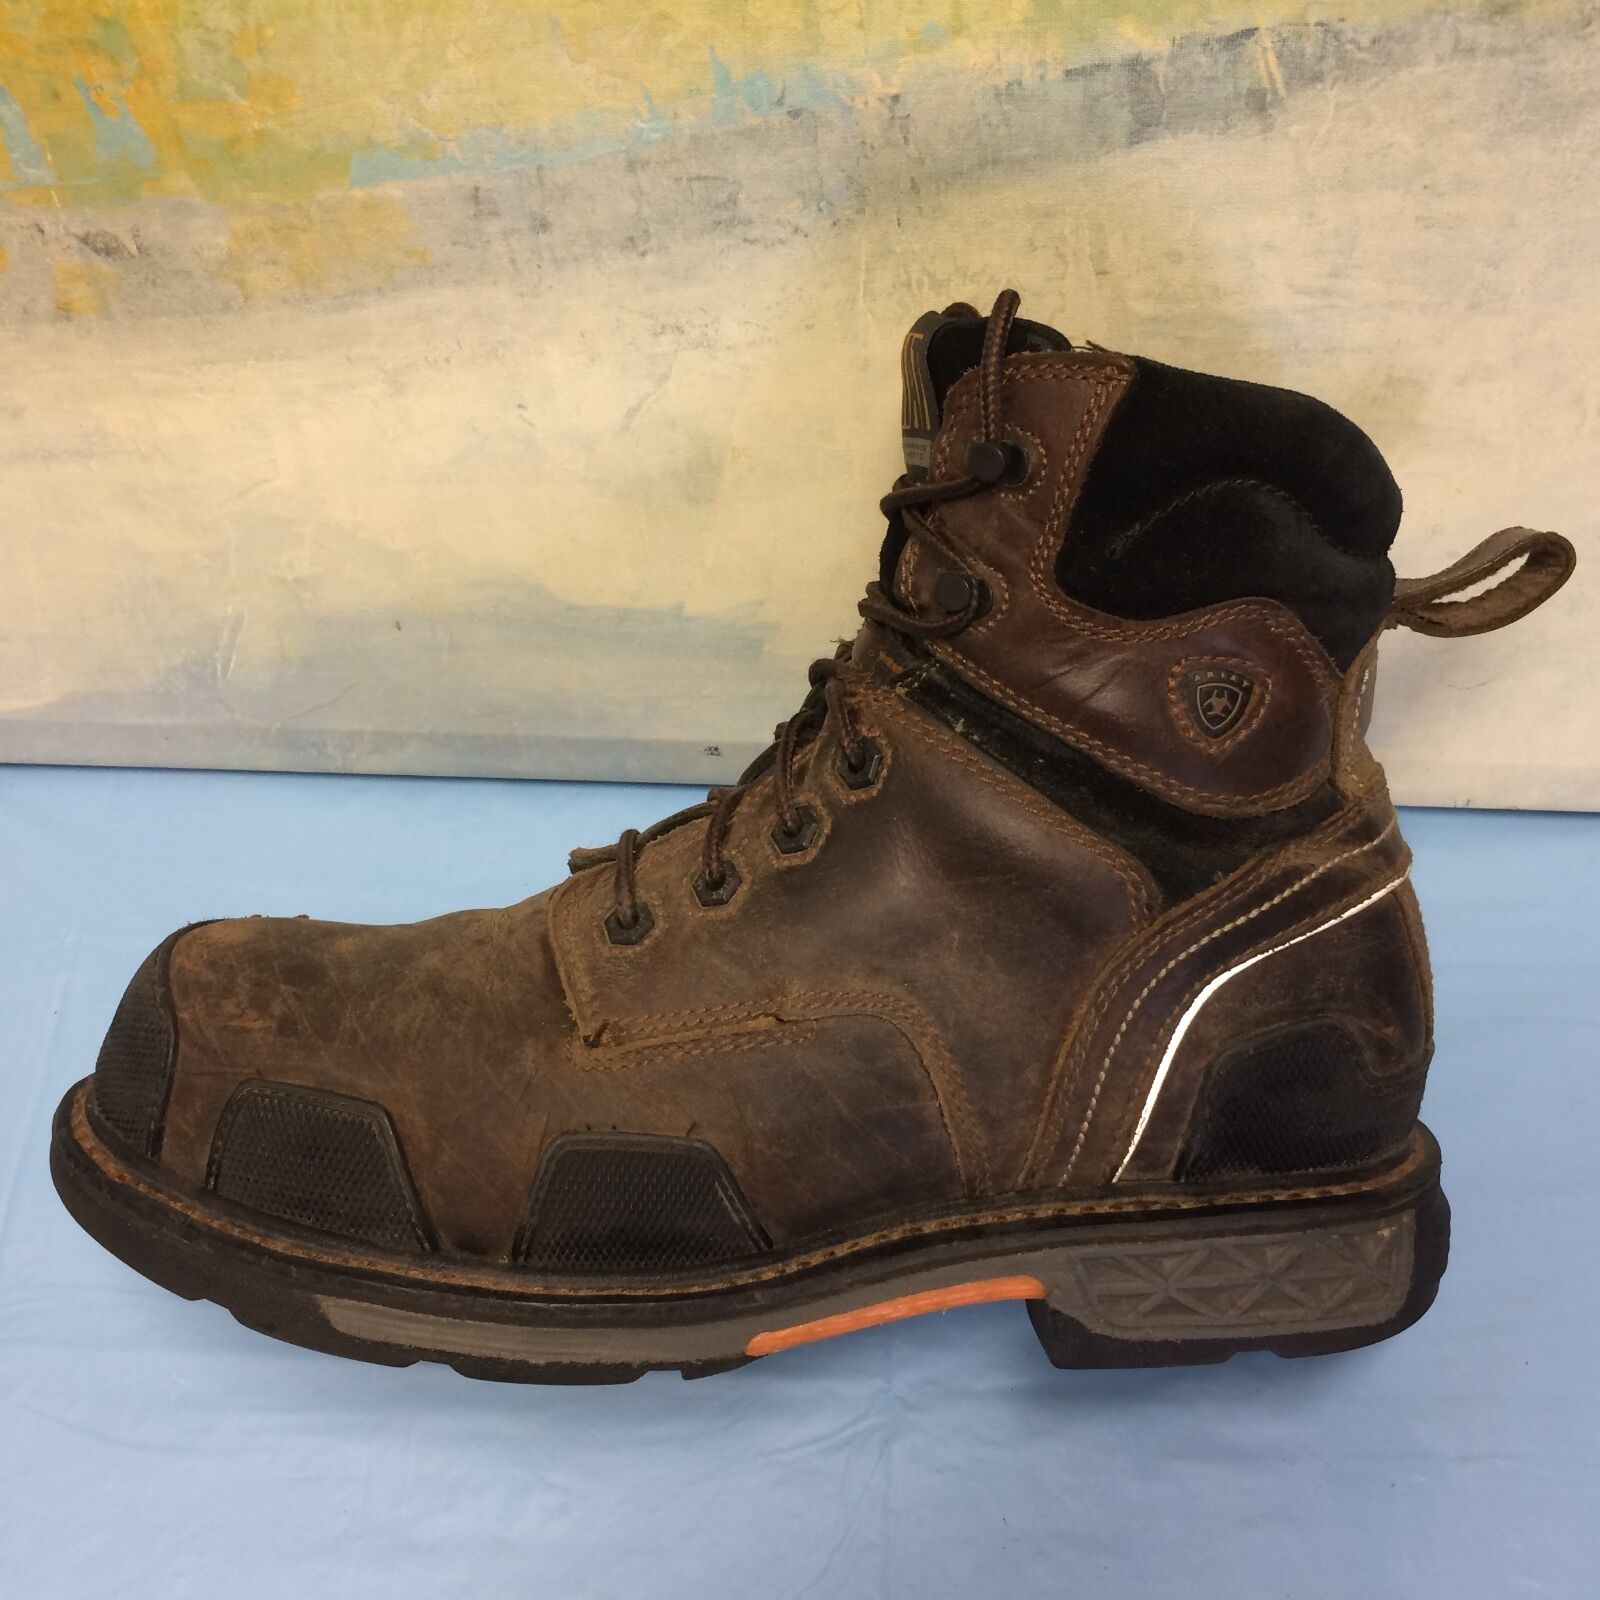 Ariat Para Hombre Overdrive 6  Lace-Up Work bota Composite Toe - 10010905 tamaño 12 Extra Ancho